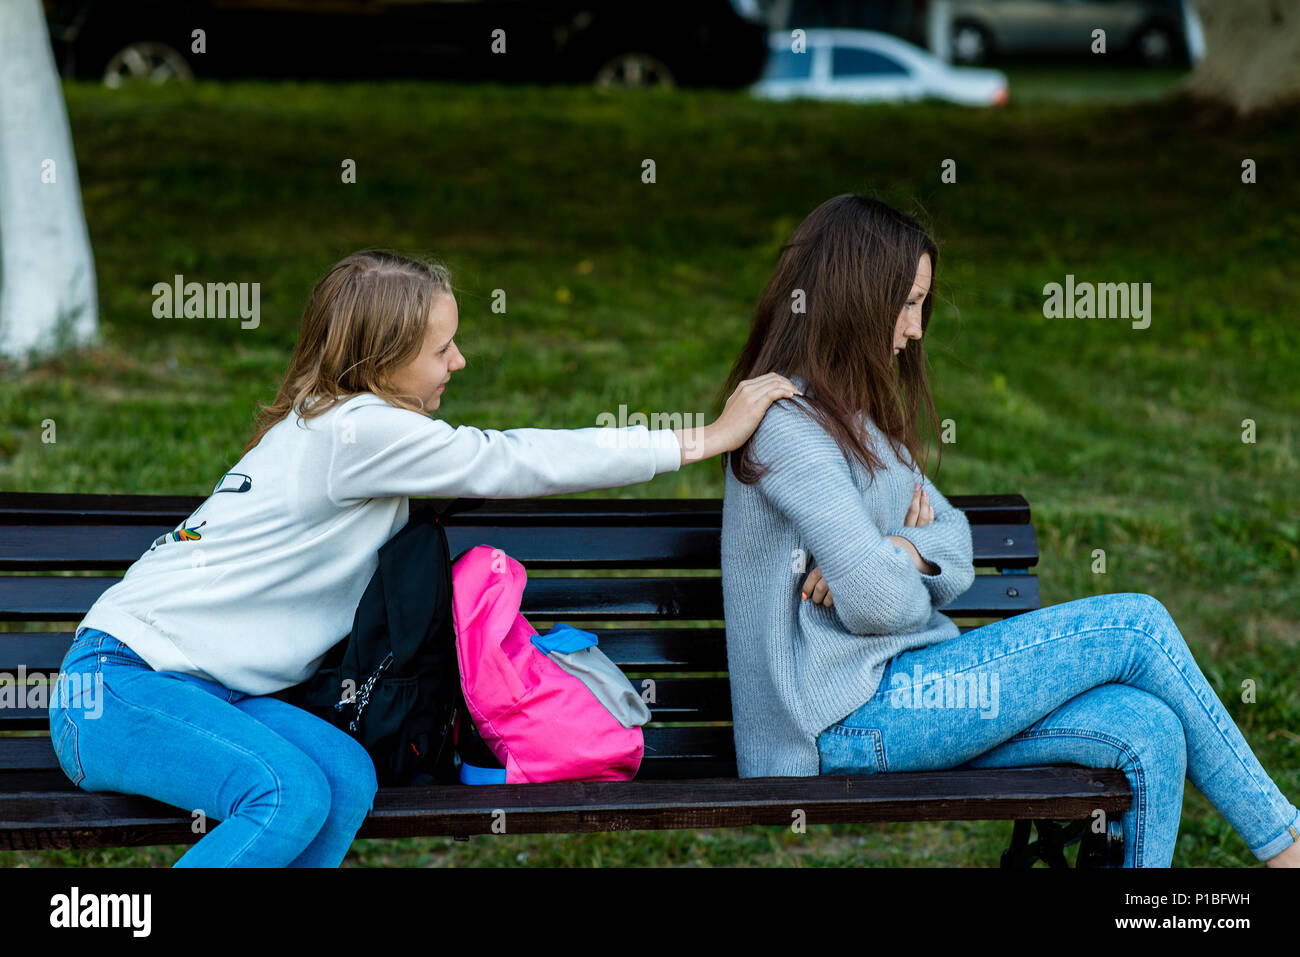 Two girlfriends in summer on the bench. Offended each other. Friends quarreled. Nigativa among girls. The problem is in the relationship. Dissatisfaction with each other. - Stock Image